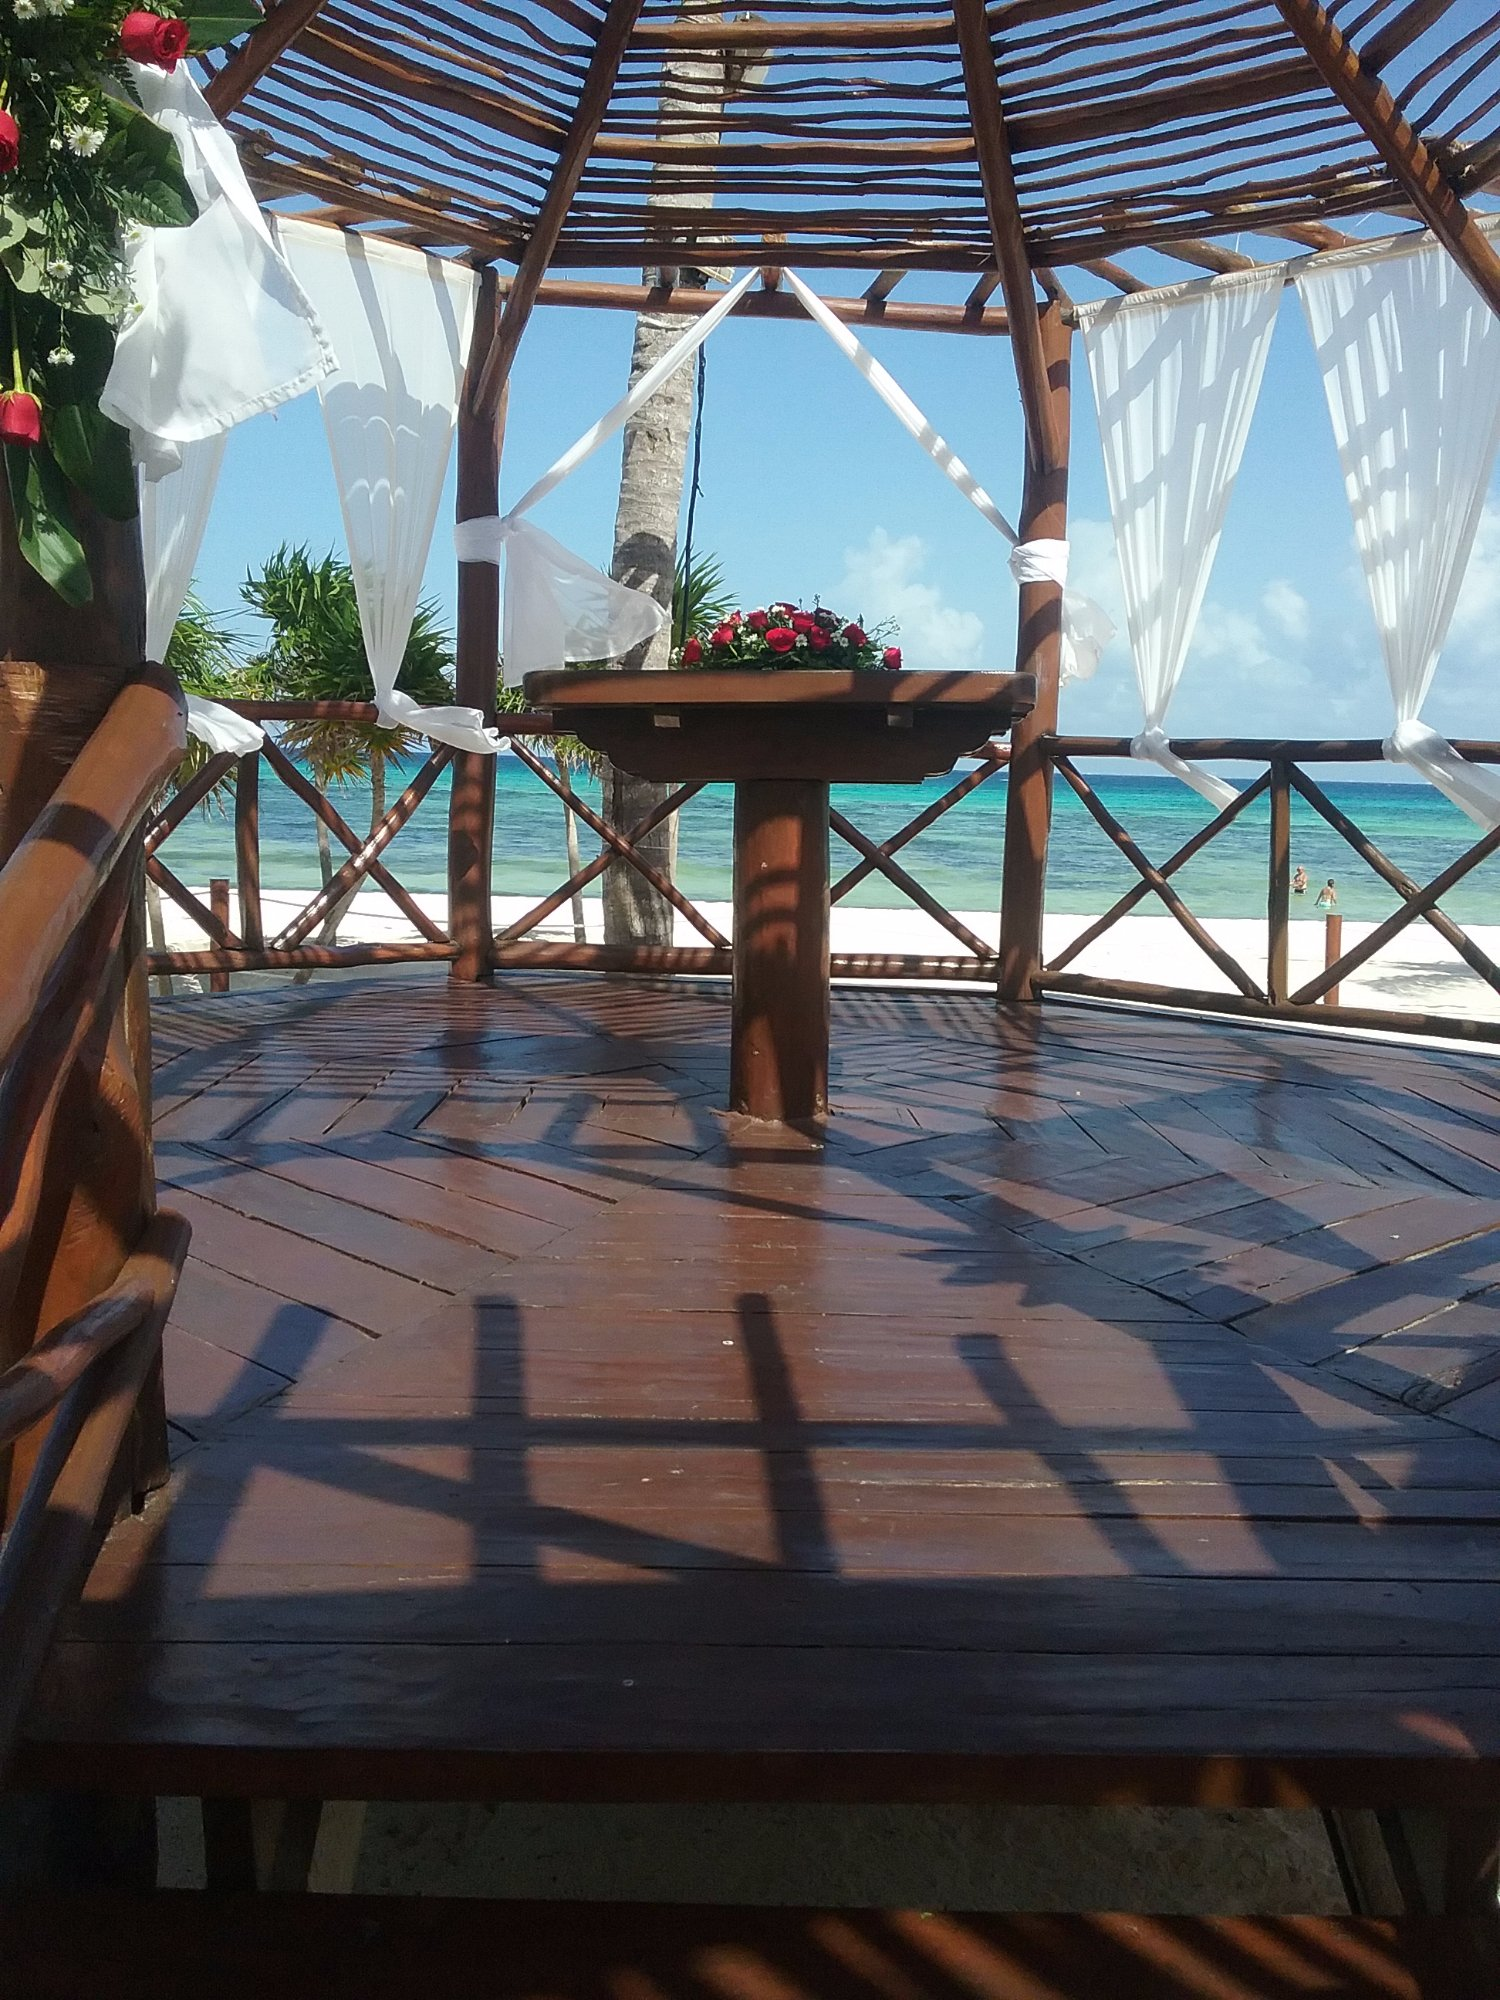 The wedding altar in the beach area